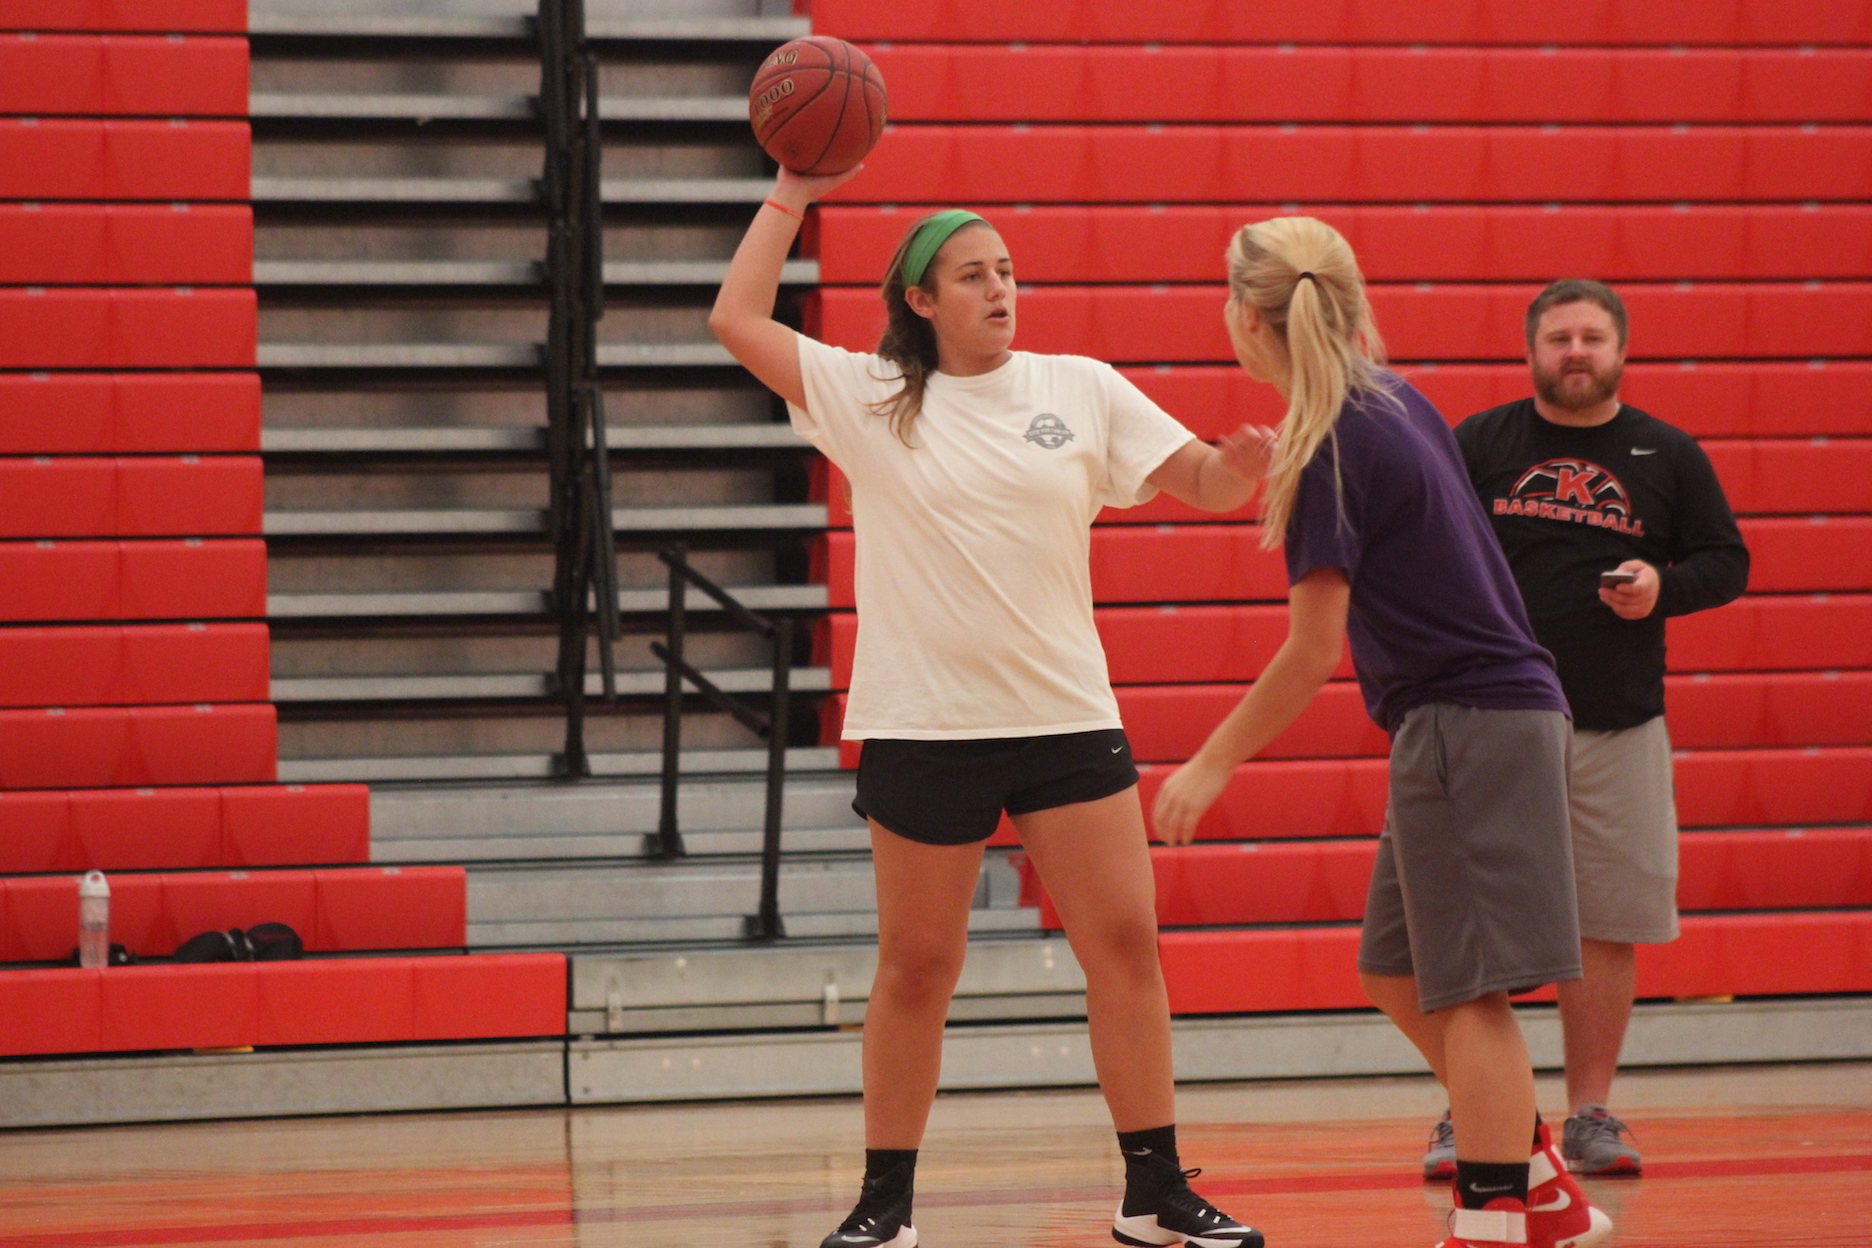 Rachel+Jacobs%2C+junior%2C+passes+to+another+teammate+during+JV+girls+basketball+practice.